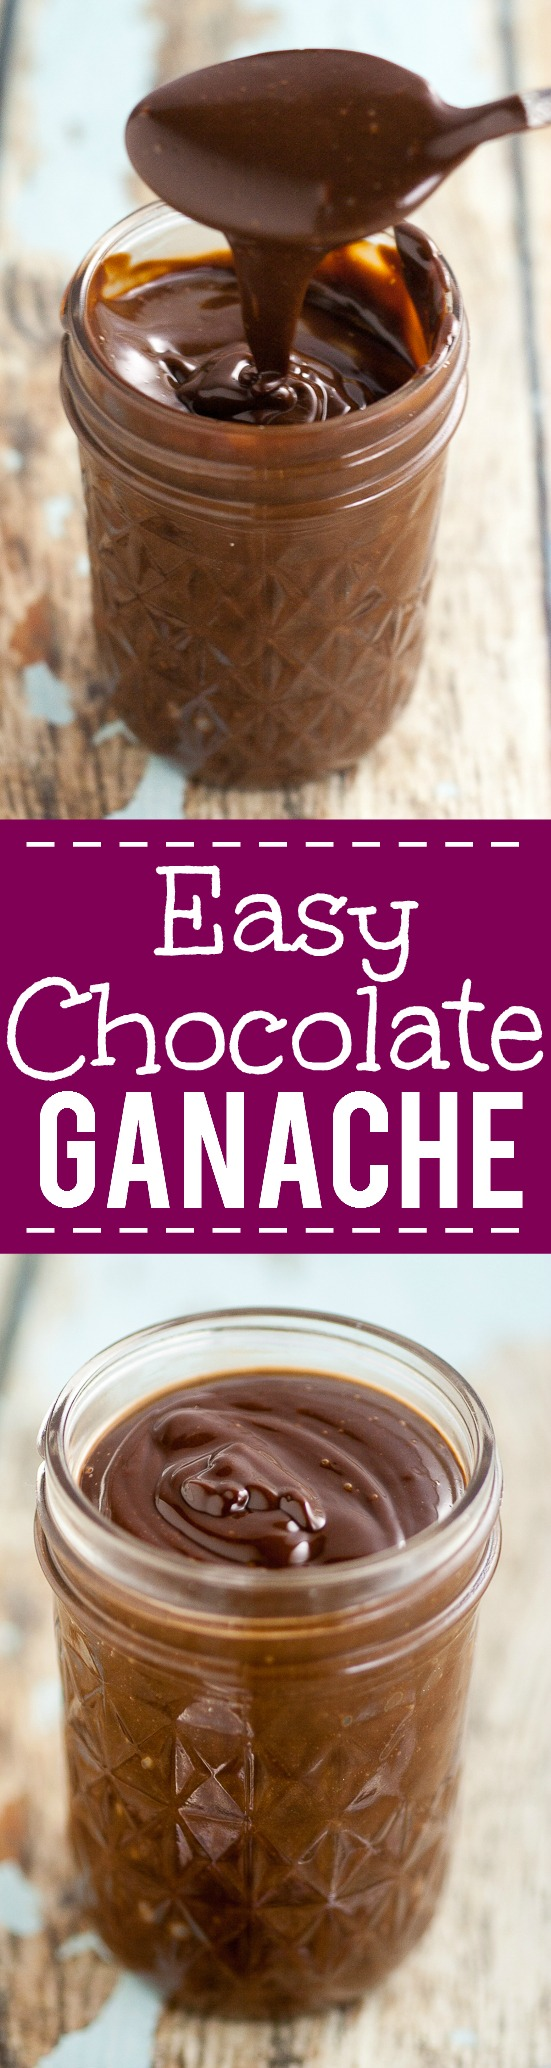 Easy Chocolate Ganache Recipe -Make this scrumptious and rich Easy Chocolate Ganache recipe with just 3 ingredients in 15 minutes! Perfect for cupcakes, cake filling, truffles, and more! A must have recipe for all chocolate lovers!